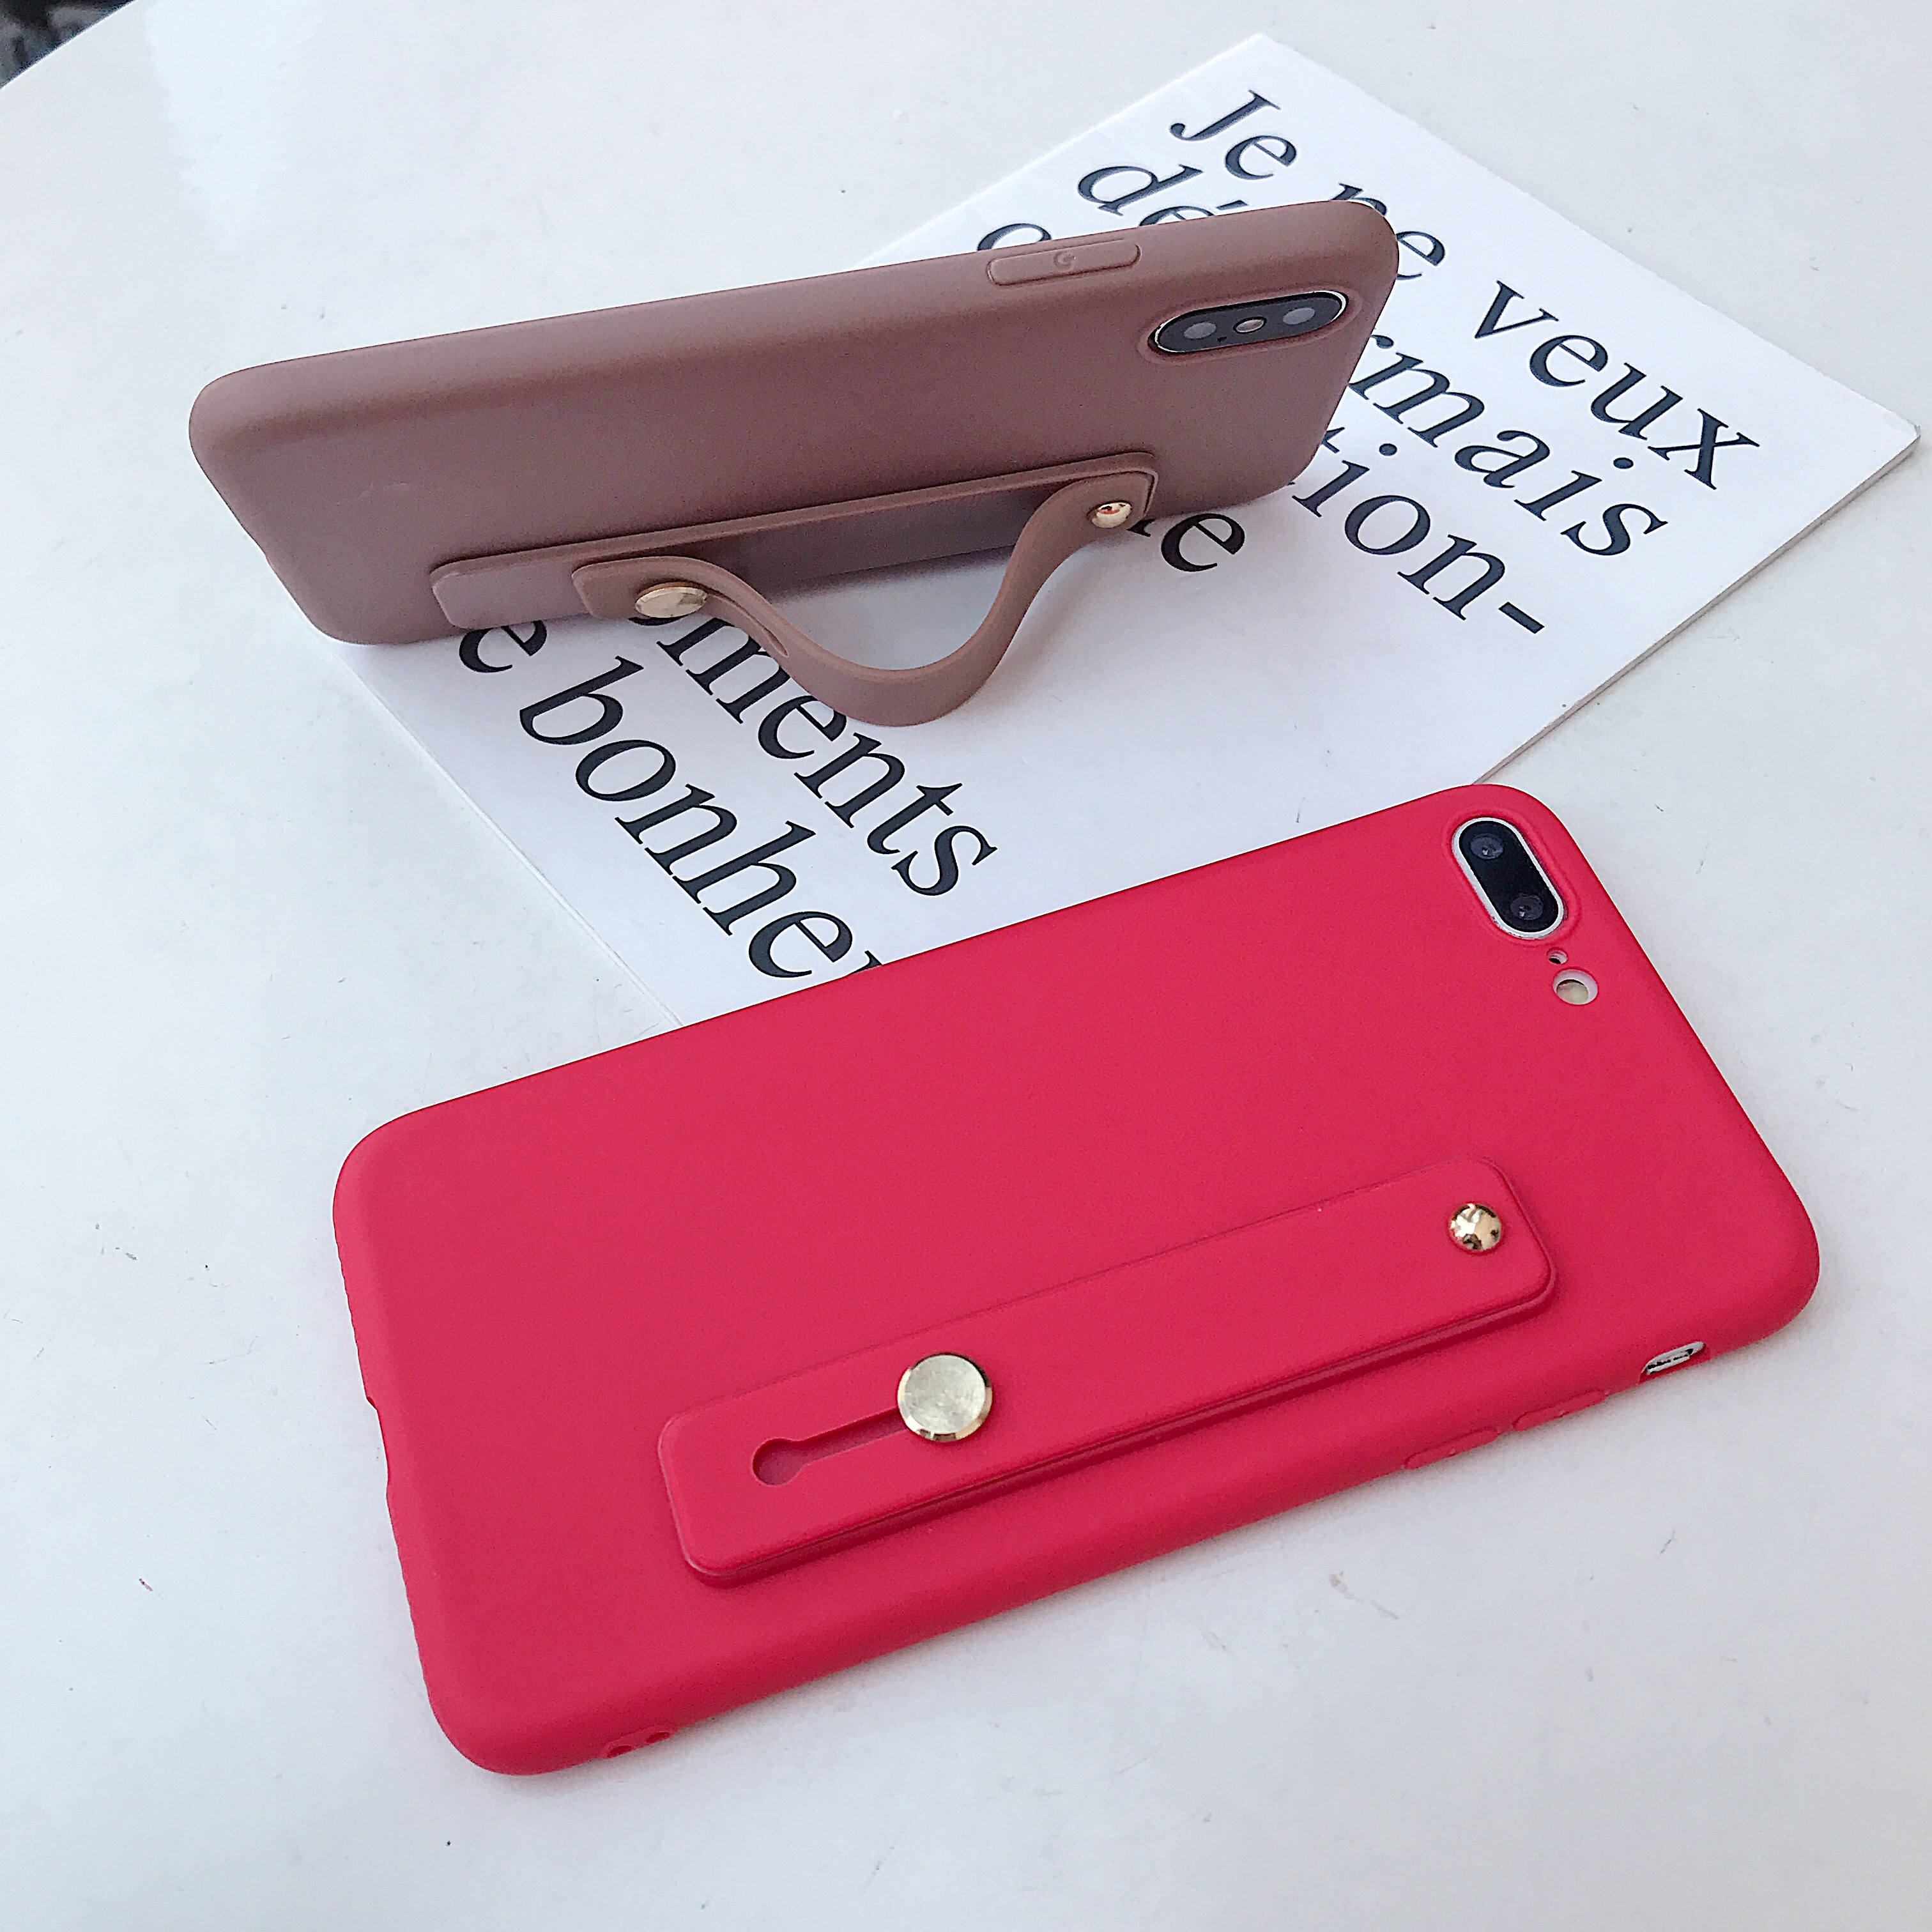 Candy Color Wrist Strap Bracket Soft Phone Case For Samsung Galaxy S10 S20 S7 S8 S9 Edge E Lite Plus + Note 8 9 5 10 Pro Ultra